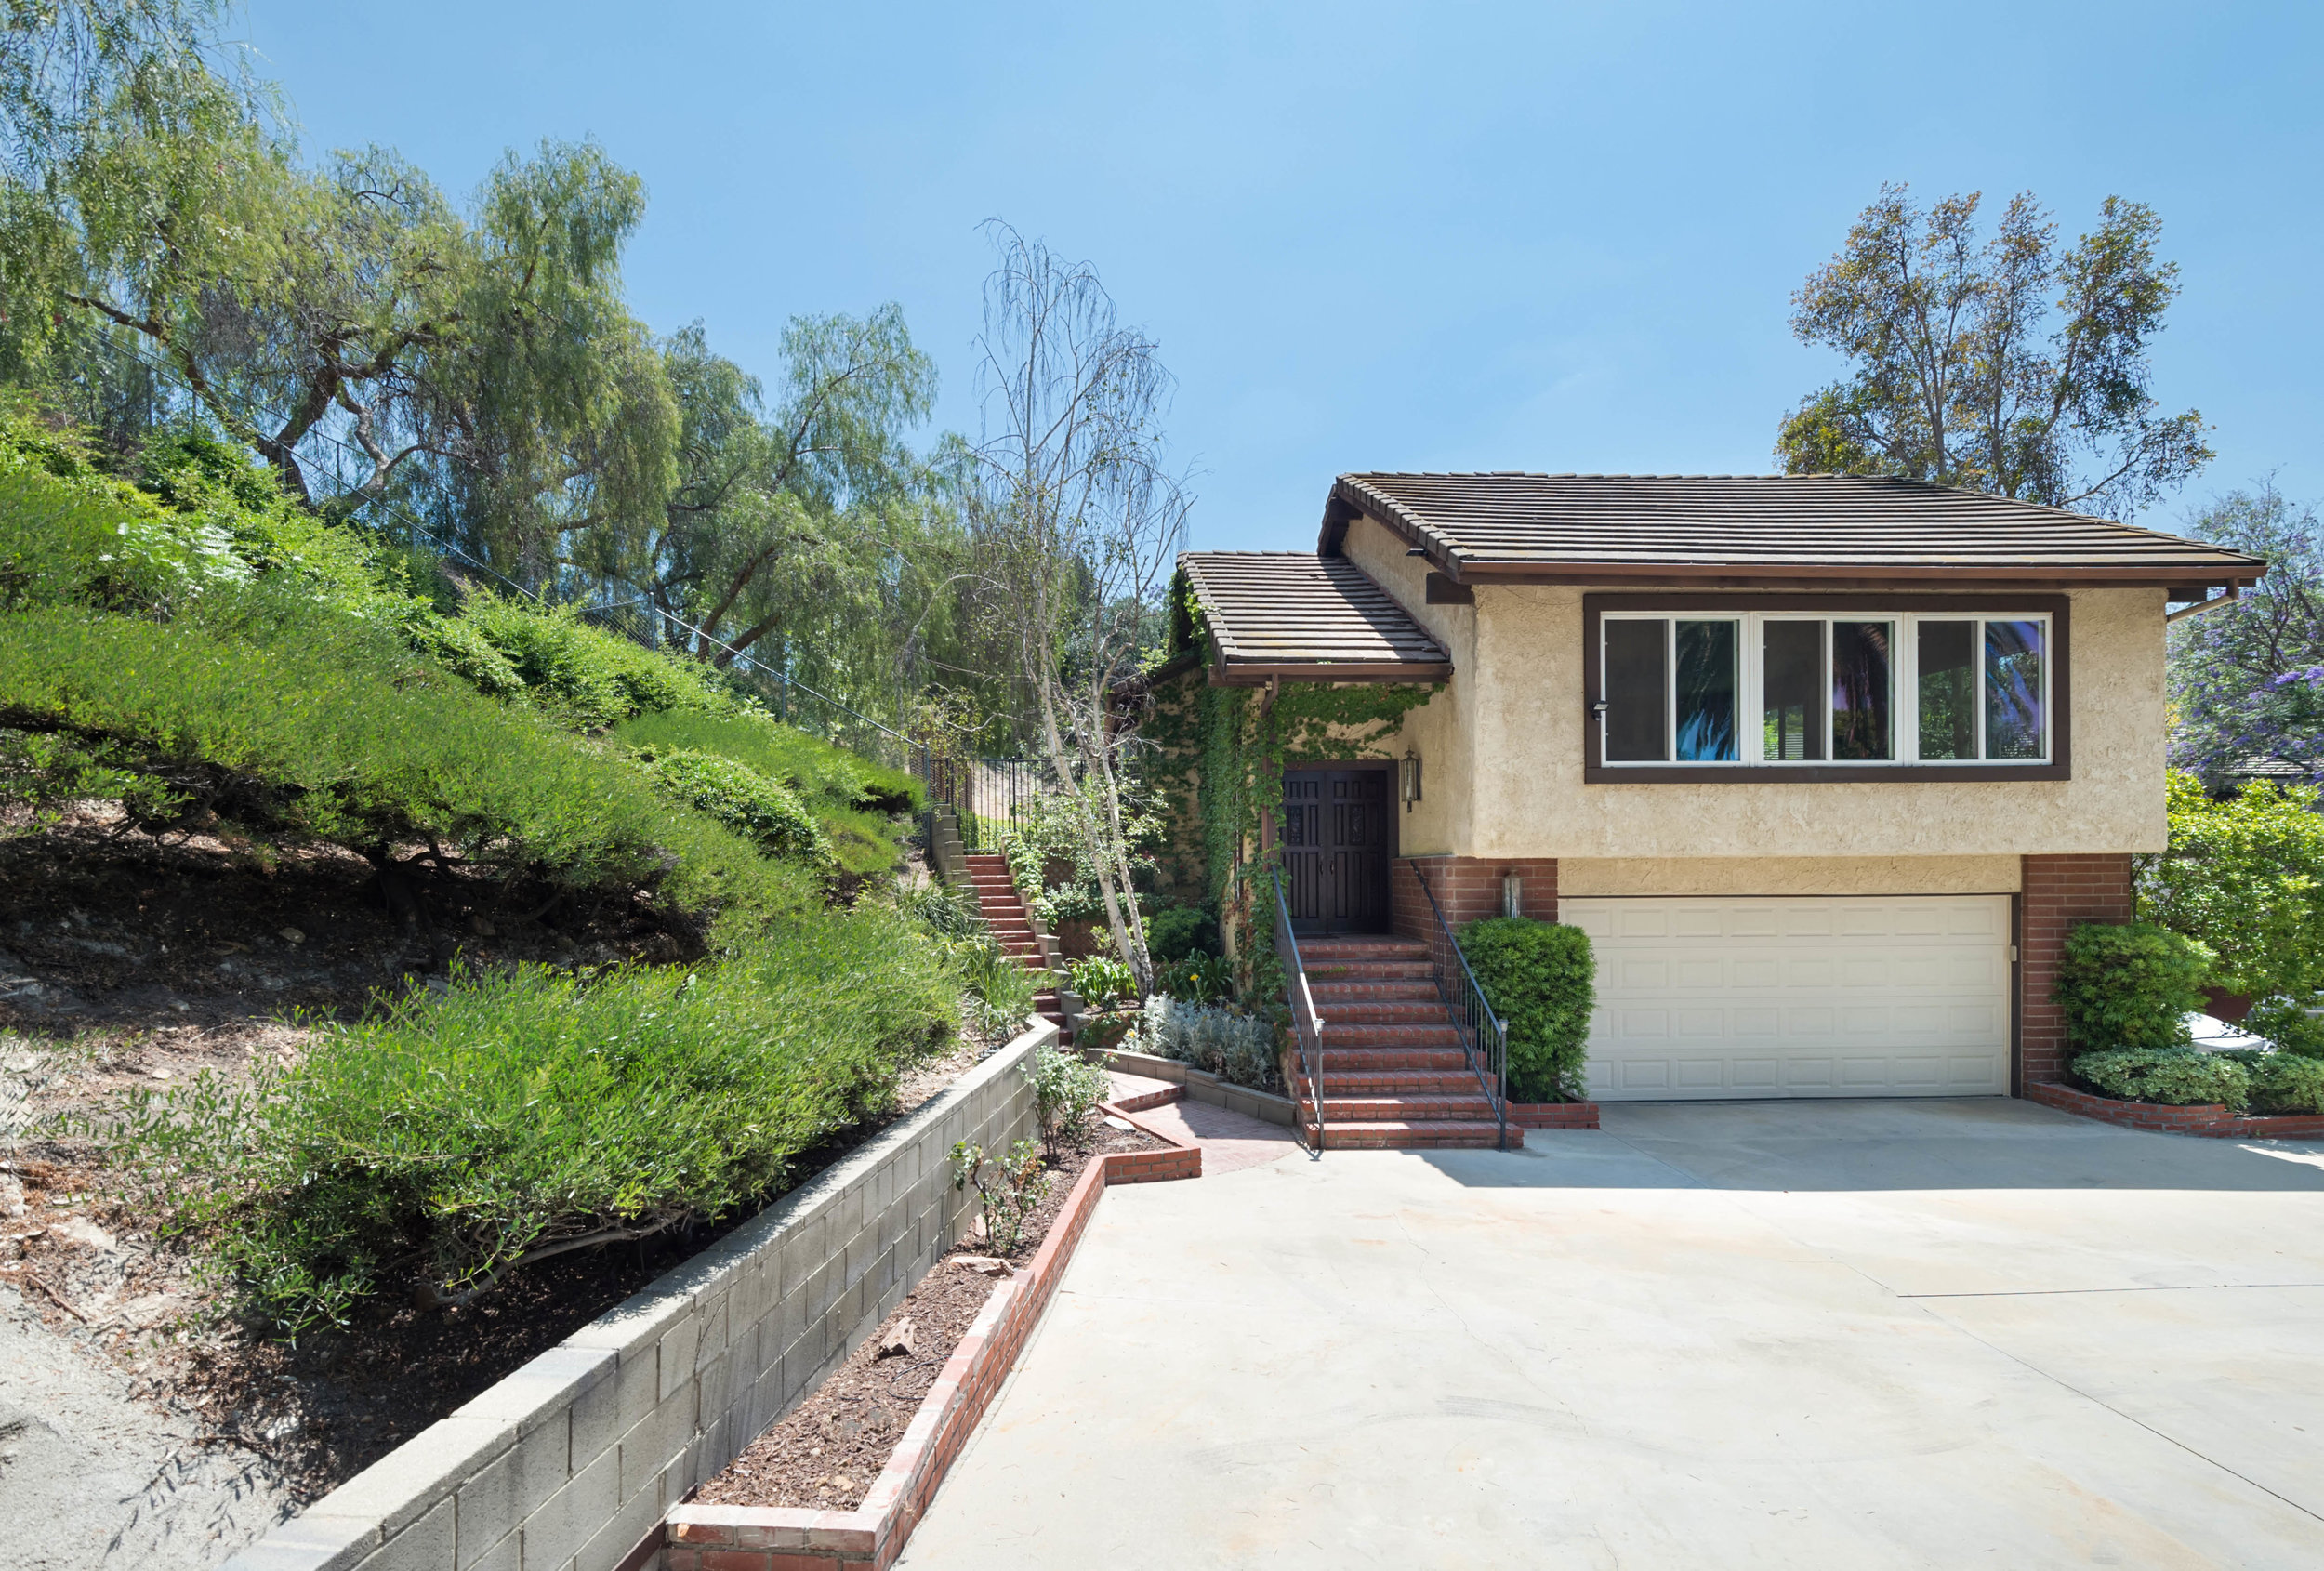 007 front 8832 Moorcroft Avenue West Hills For Sale Lease The Malibu Life Team Luxury Real Estate.jpg